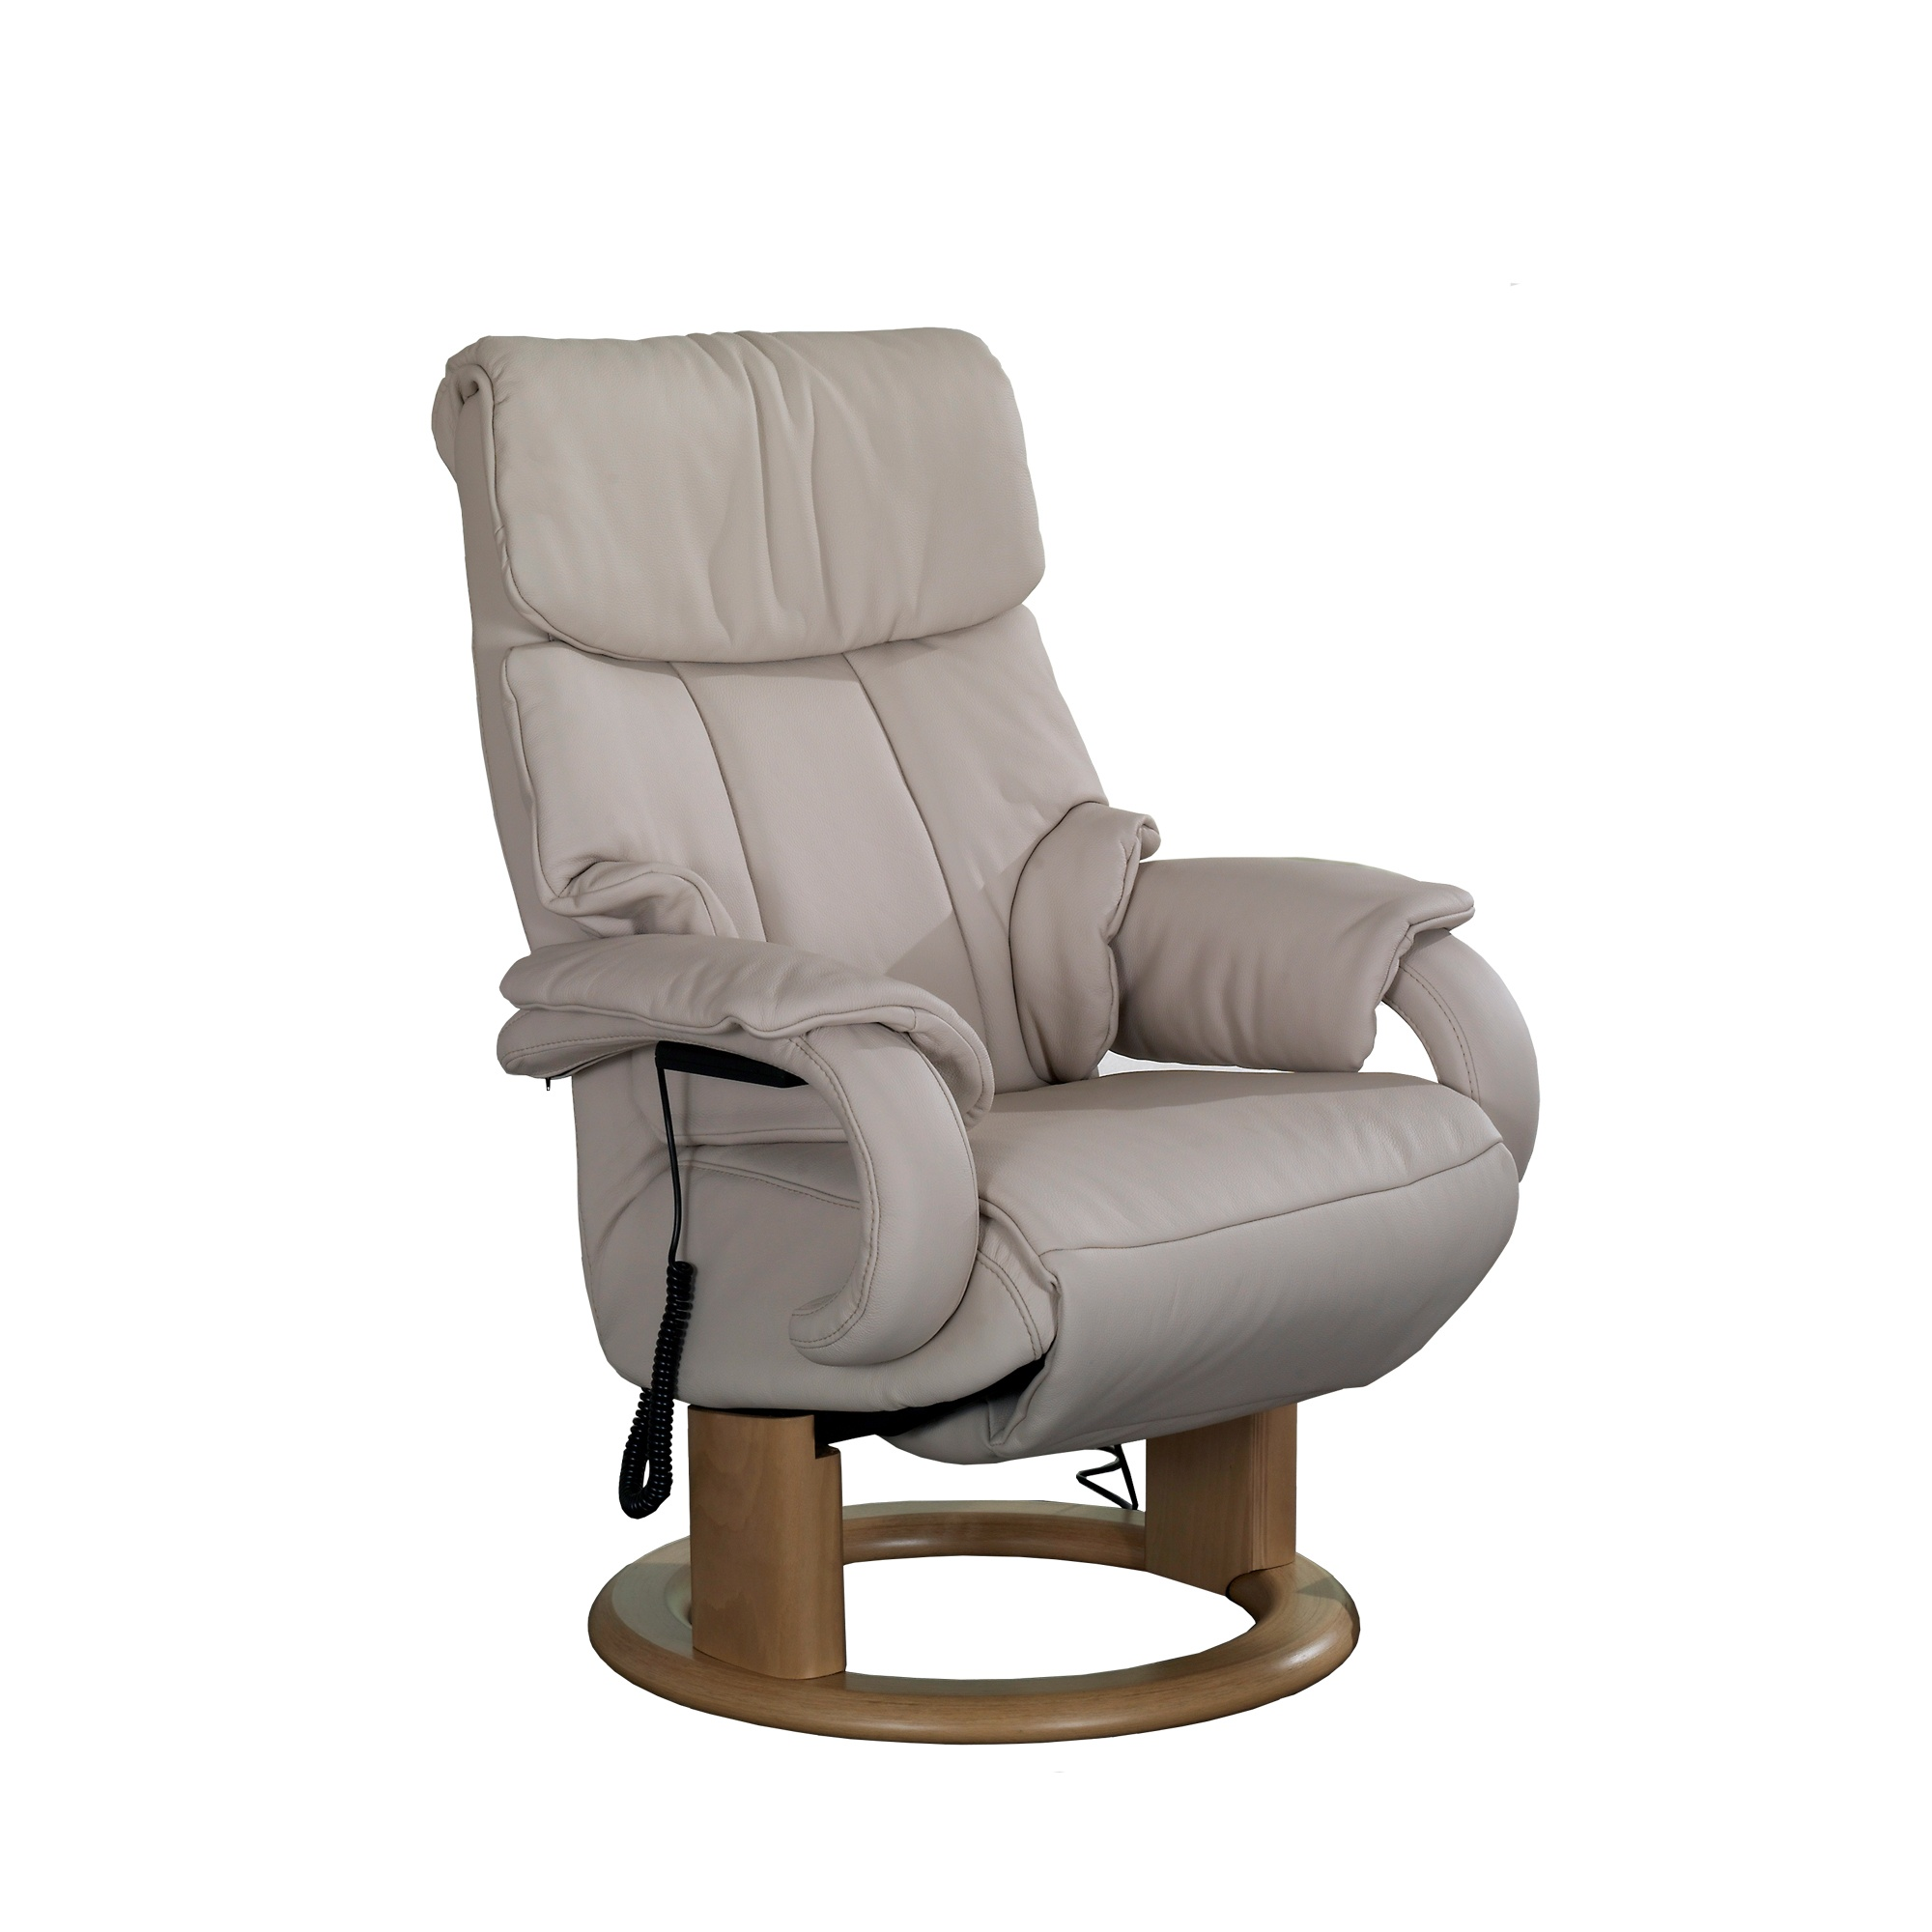 Himolla Tobi Electric Recliner Armchair Wide  sc 1 st  Cookes Furniture & Himolla Tobi Electric Recliner Armchair Wide - Himolla - Cookes ... islam-shia.org